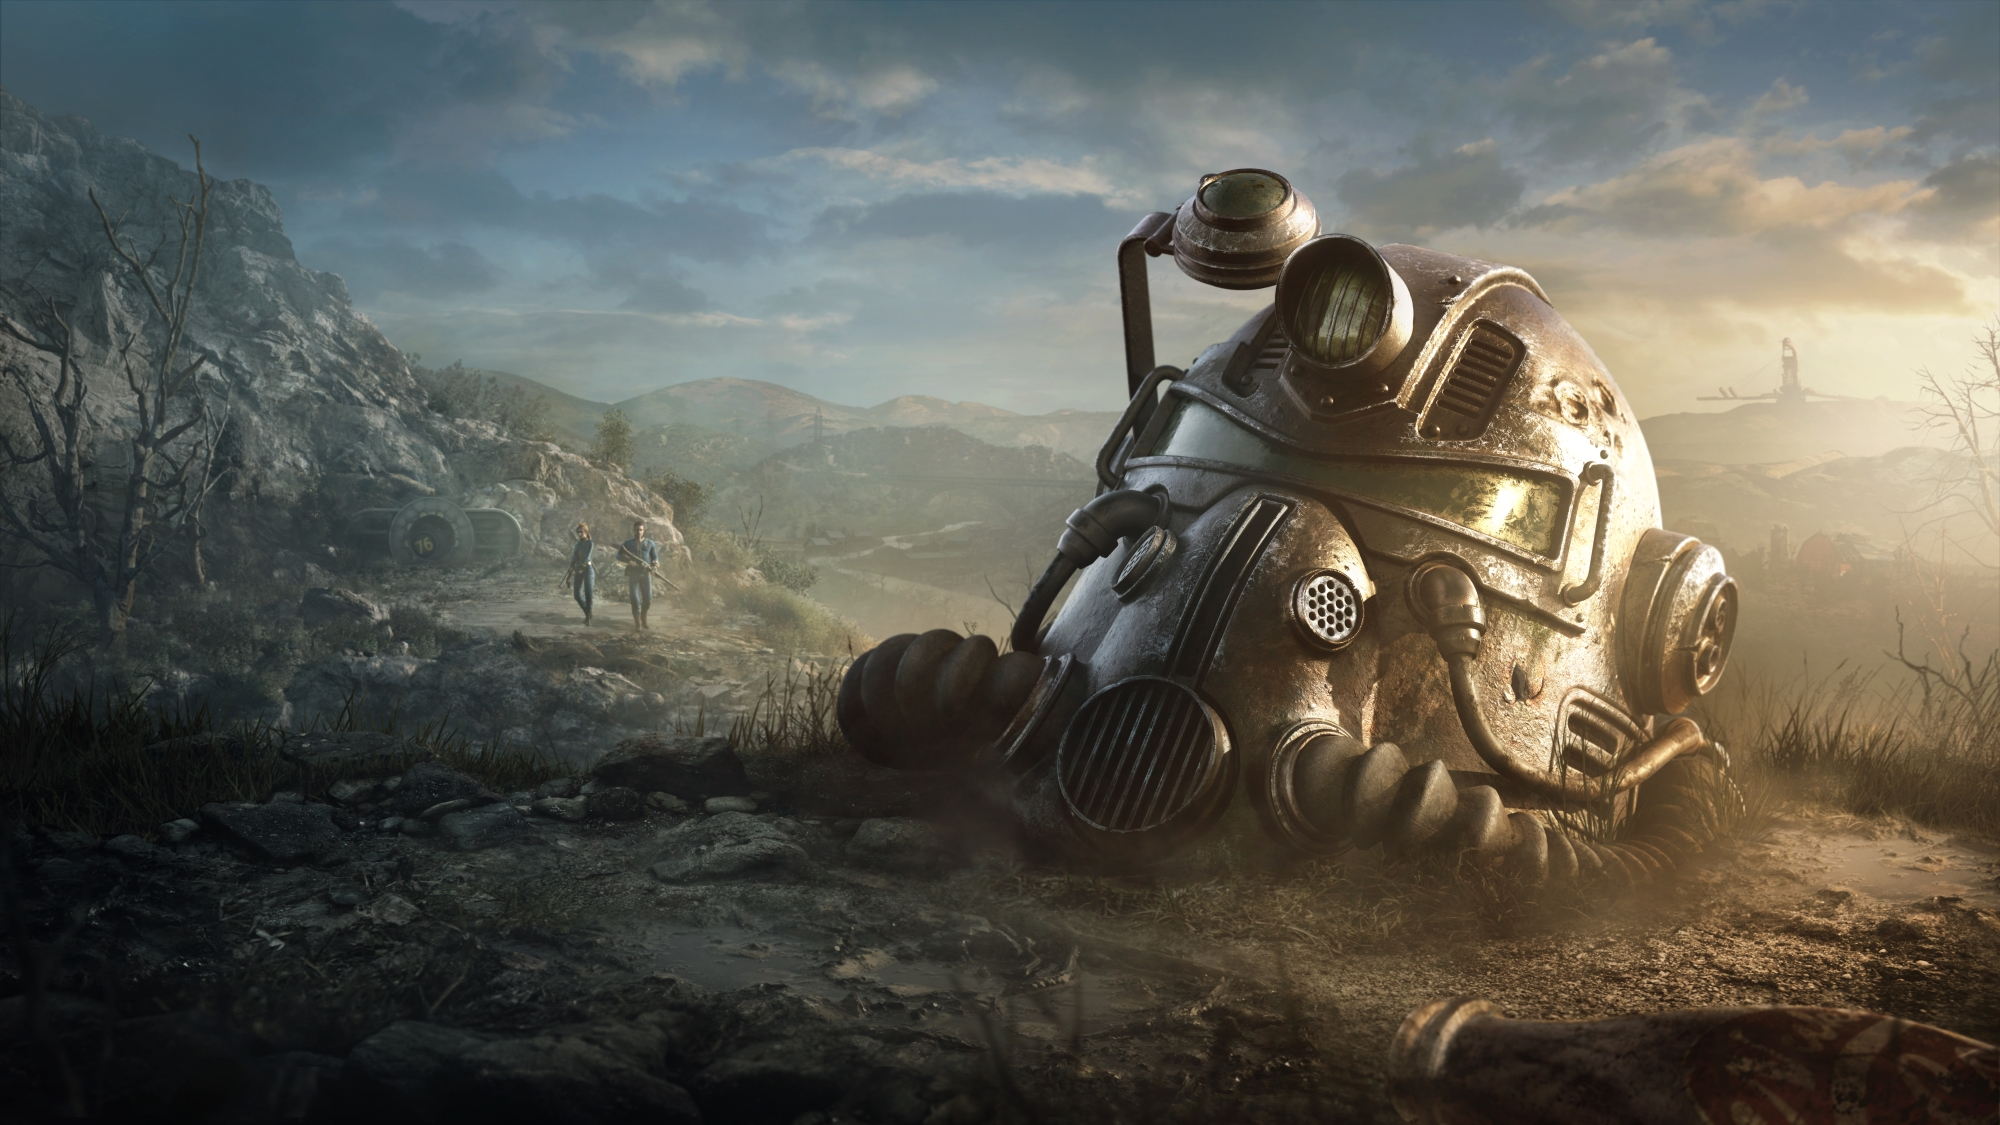 Fallout 76 review in progress – the first day